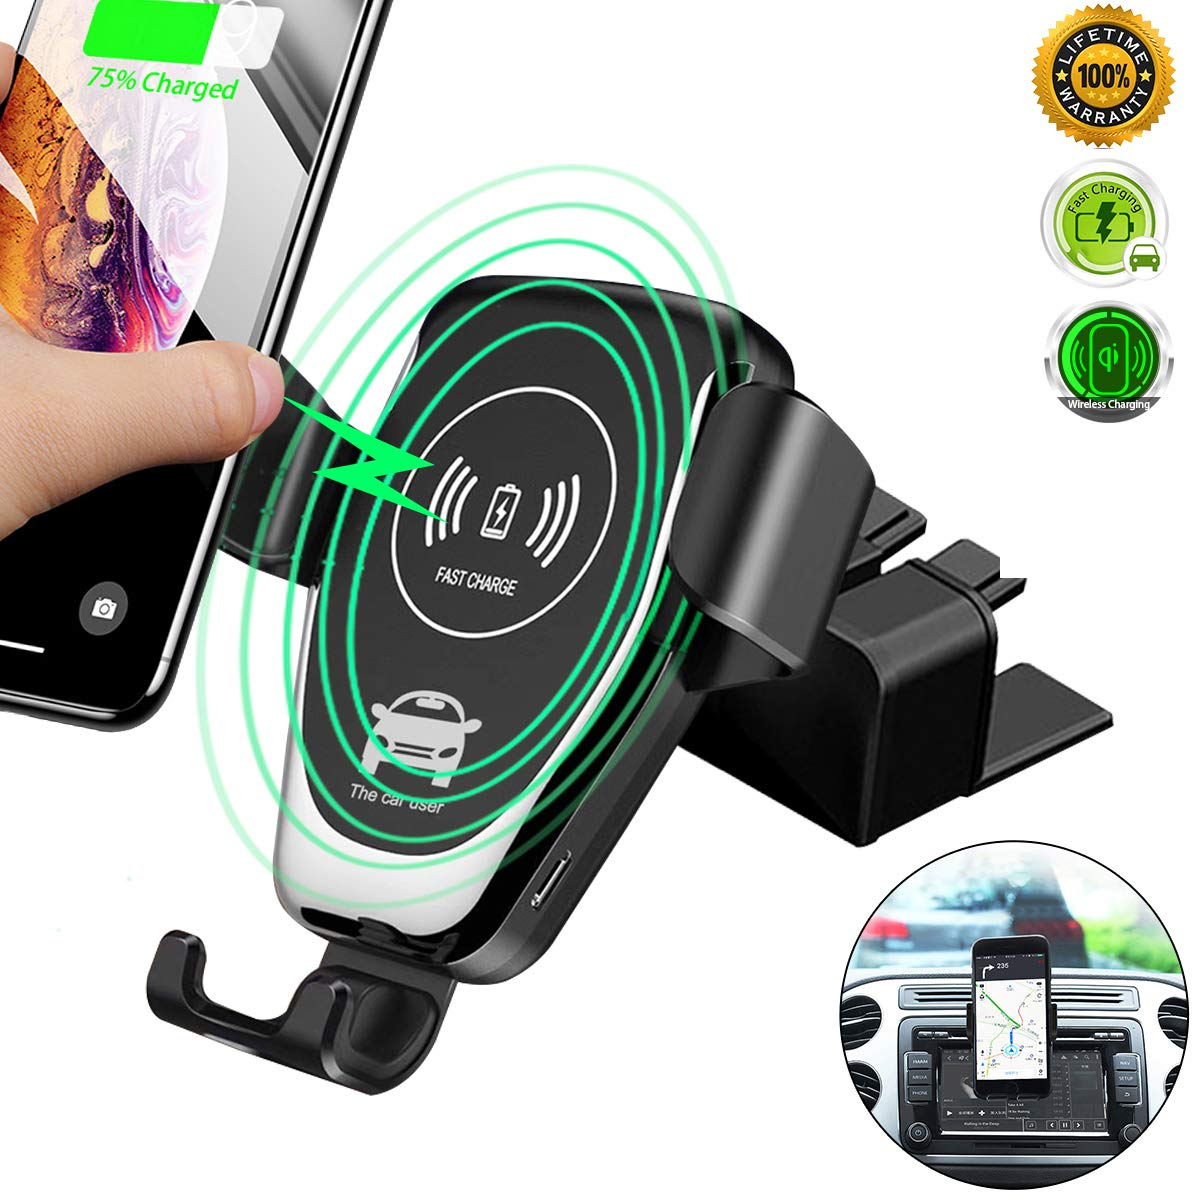 fire Cable Auto Clamping Wireless Car Charger w//New Auto Holding Cradle fC Air Vent Mount is Foam Backed for Scratch Protection